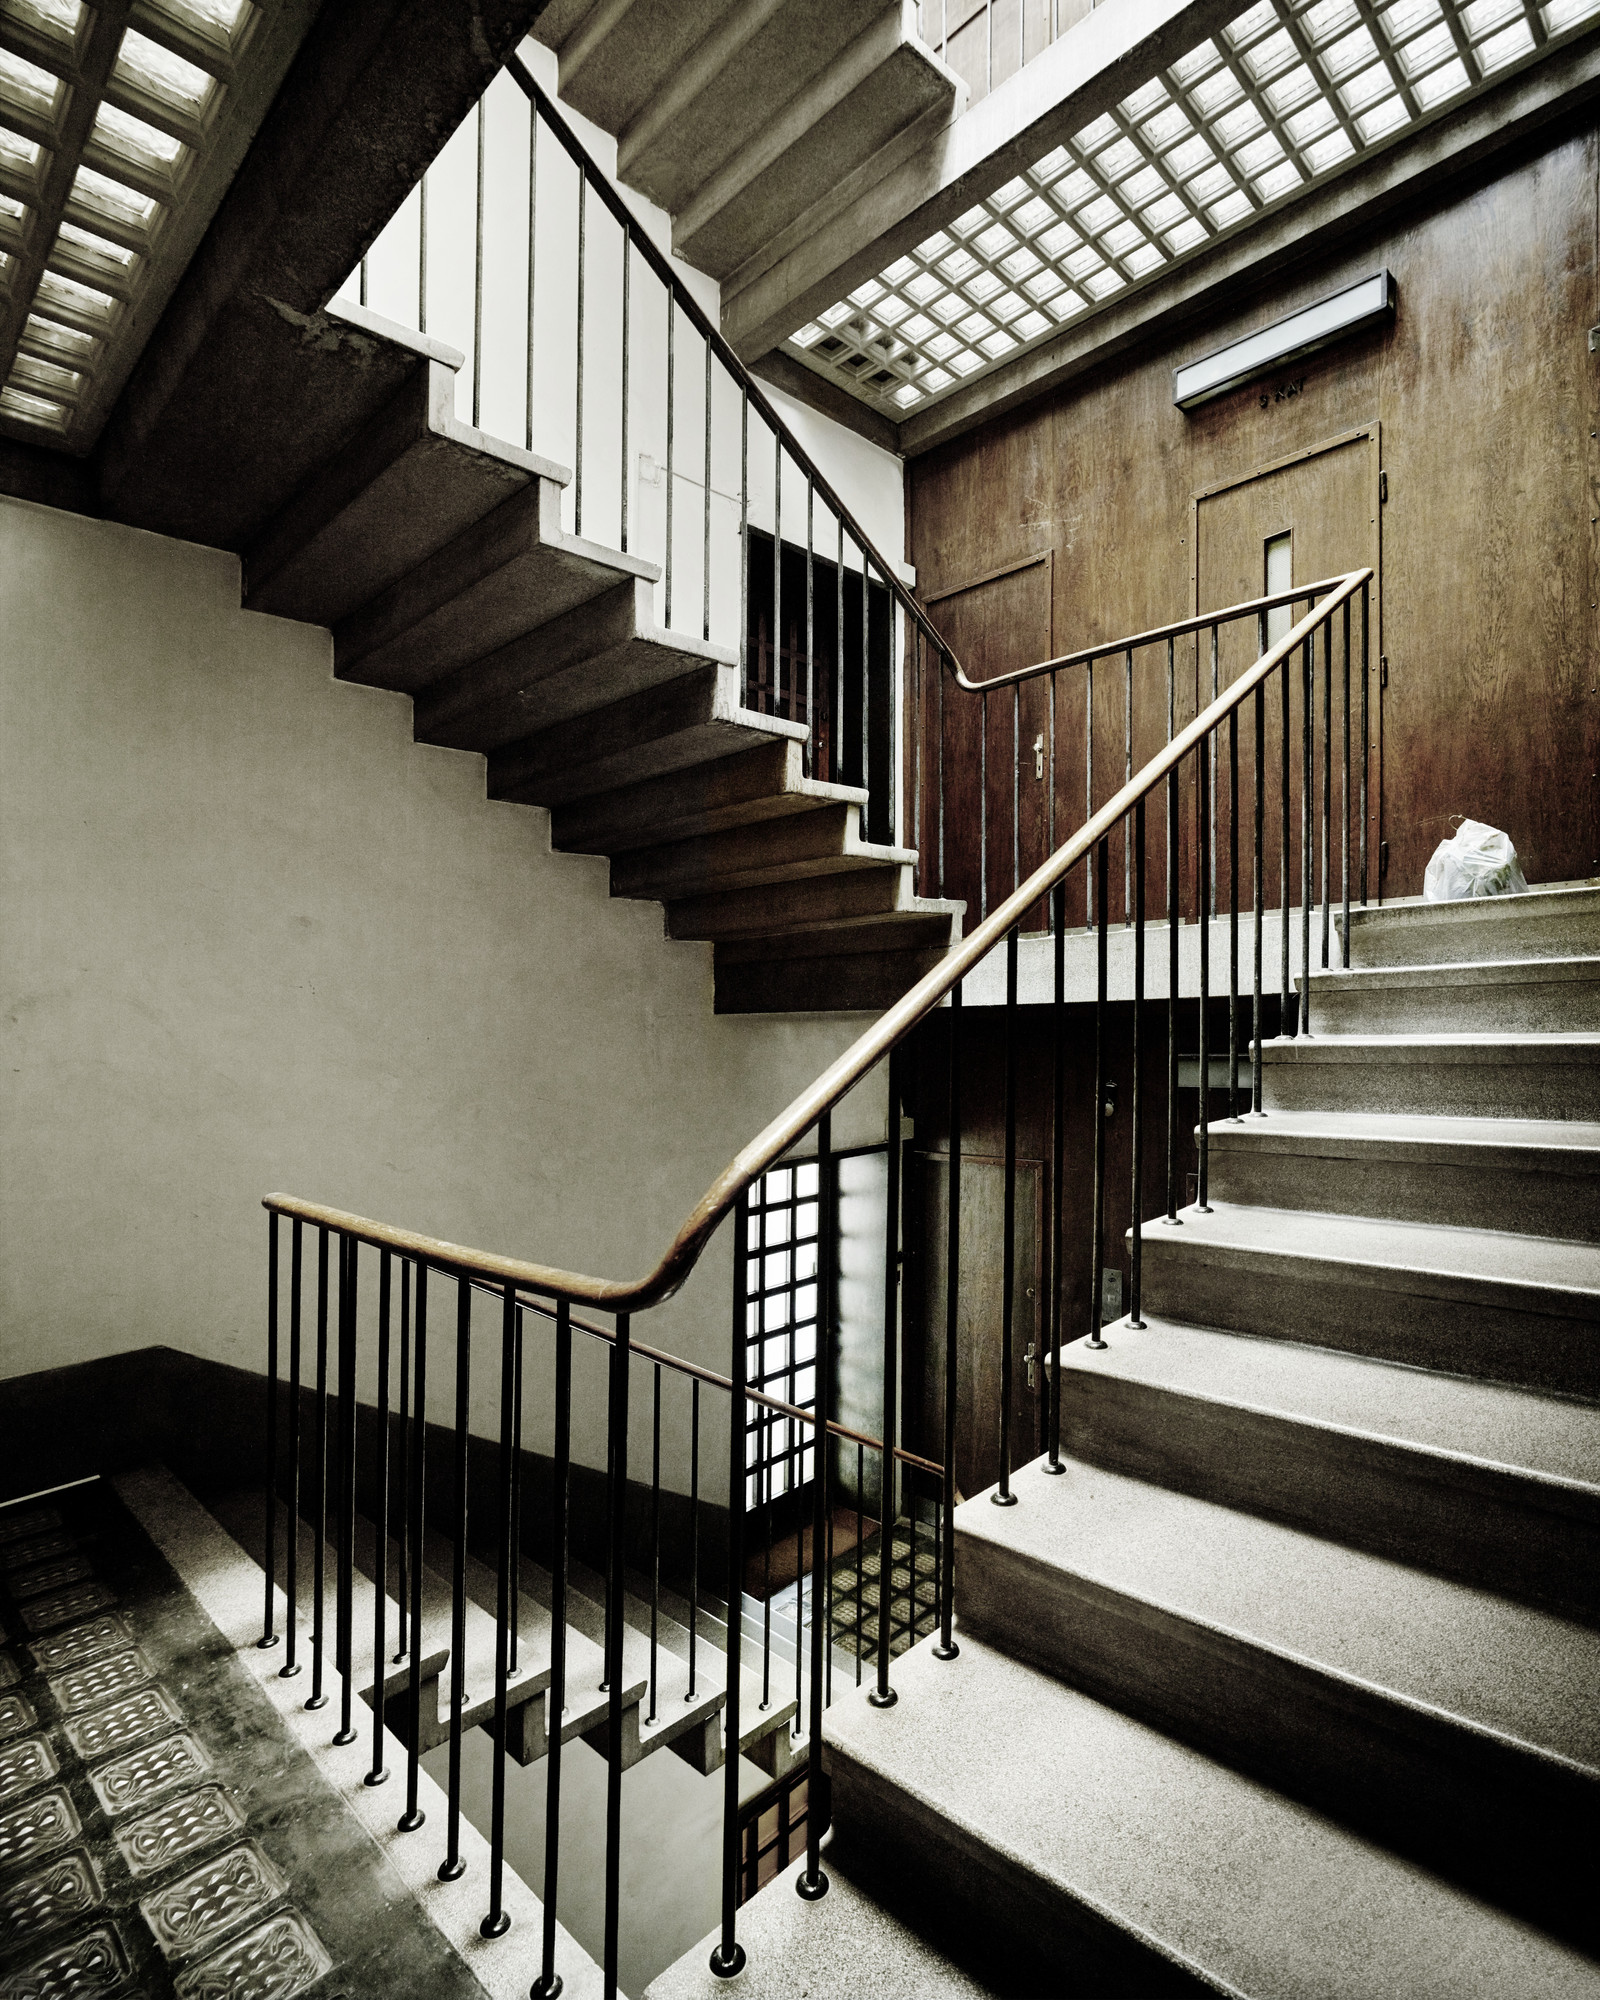 Valentin Jeck, Drago Galić. Apartment Building of the Military Directorate, Zagreb, Croatia (Interior view of the staircase). 2016